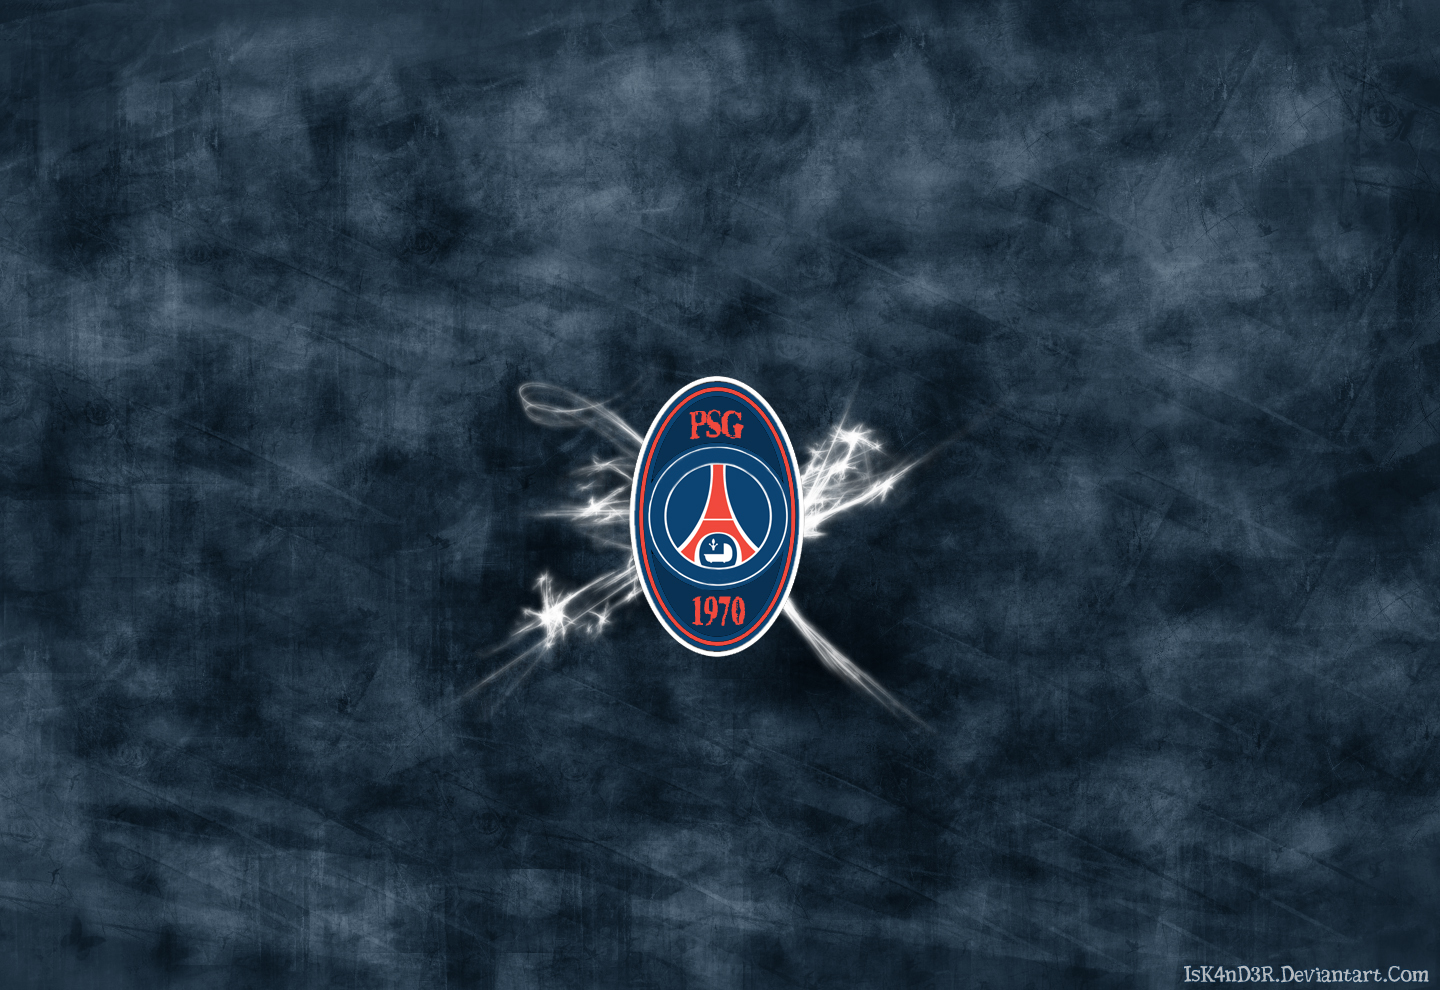 PSG Wallpaper by IsK4nD3R 1440x990